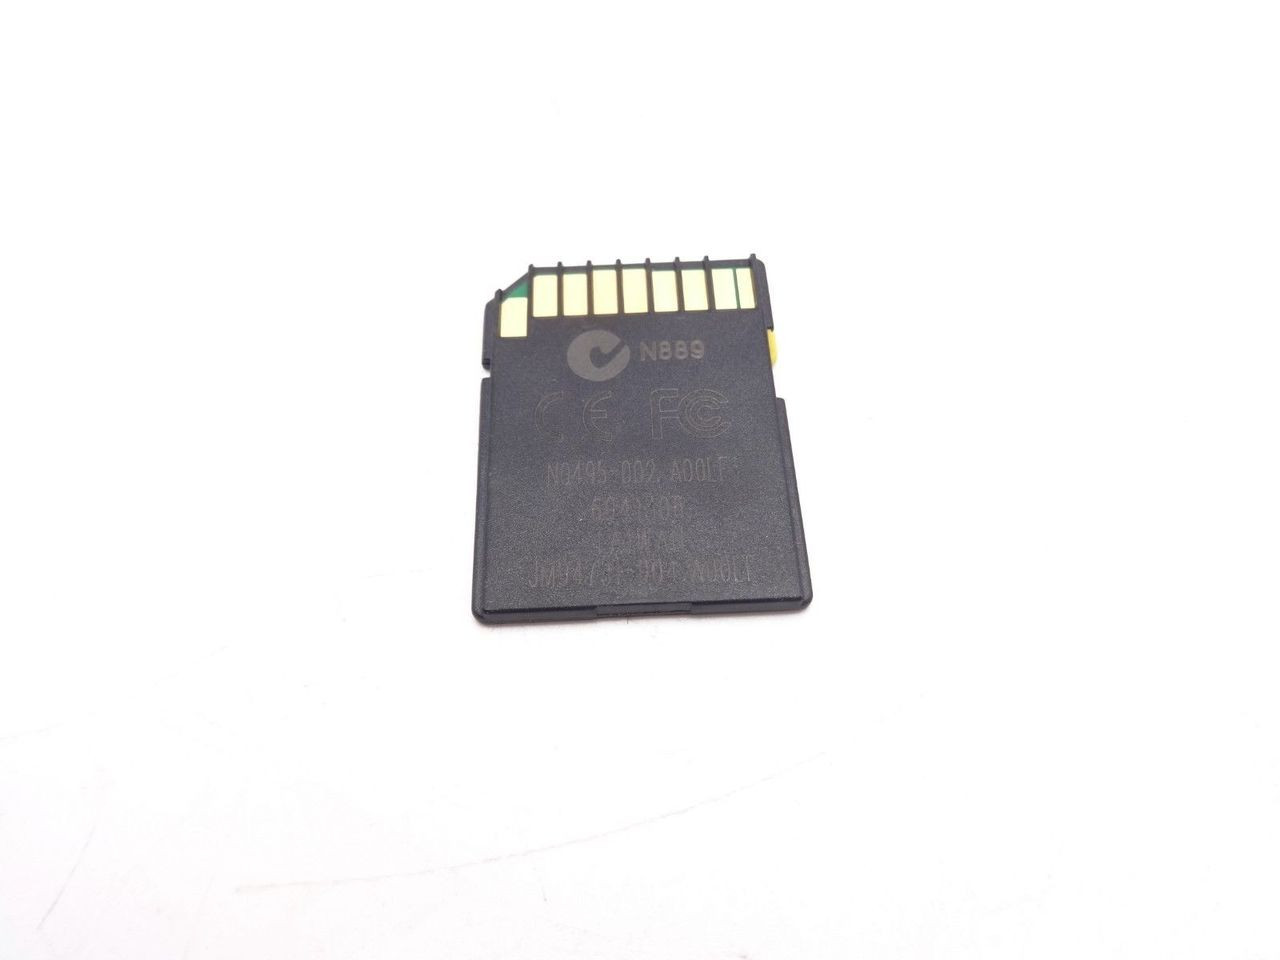 Dell 37D9D 16GB SD Card G13 VFlash